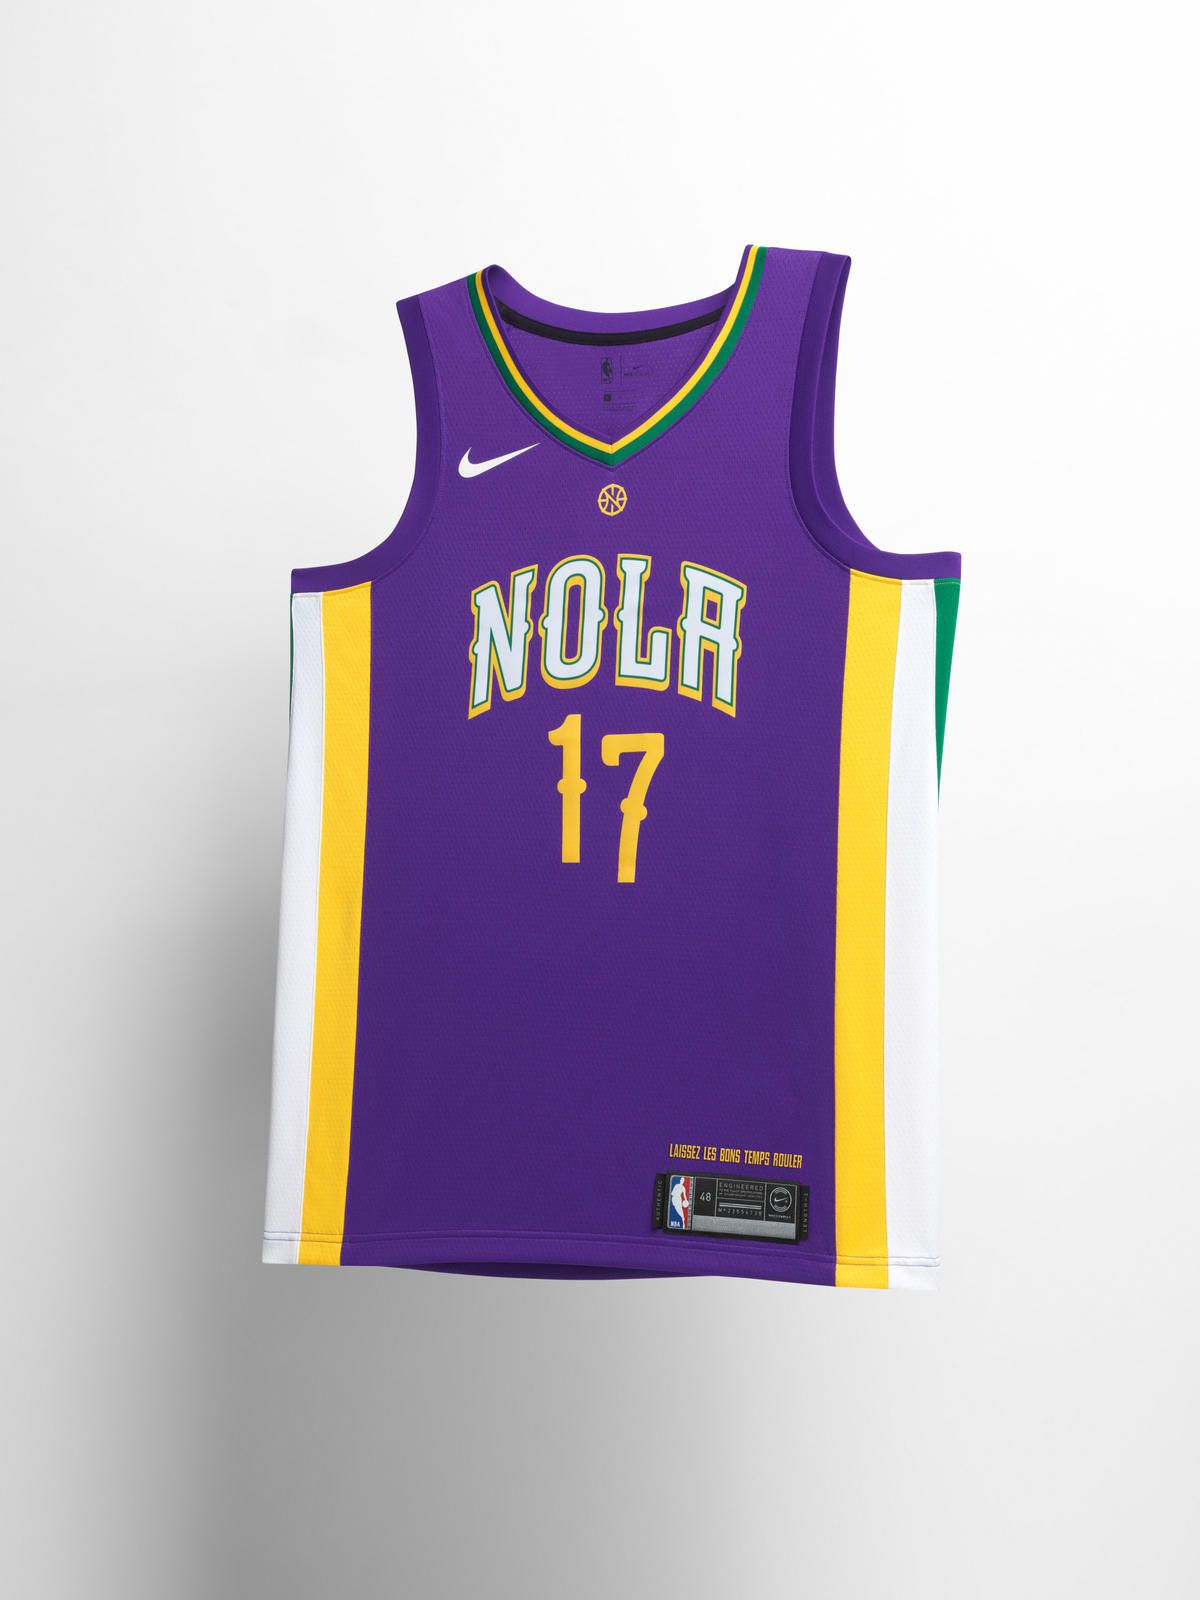 huge discount f5718 ad1fa Nike NBA City Jerseys: The good, the bad and the ugly ...